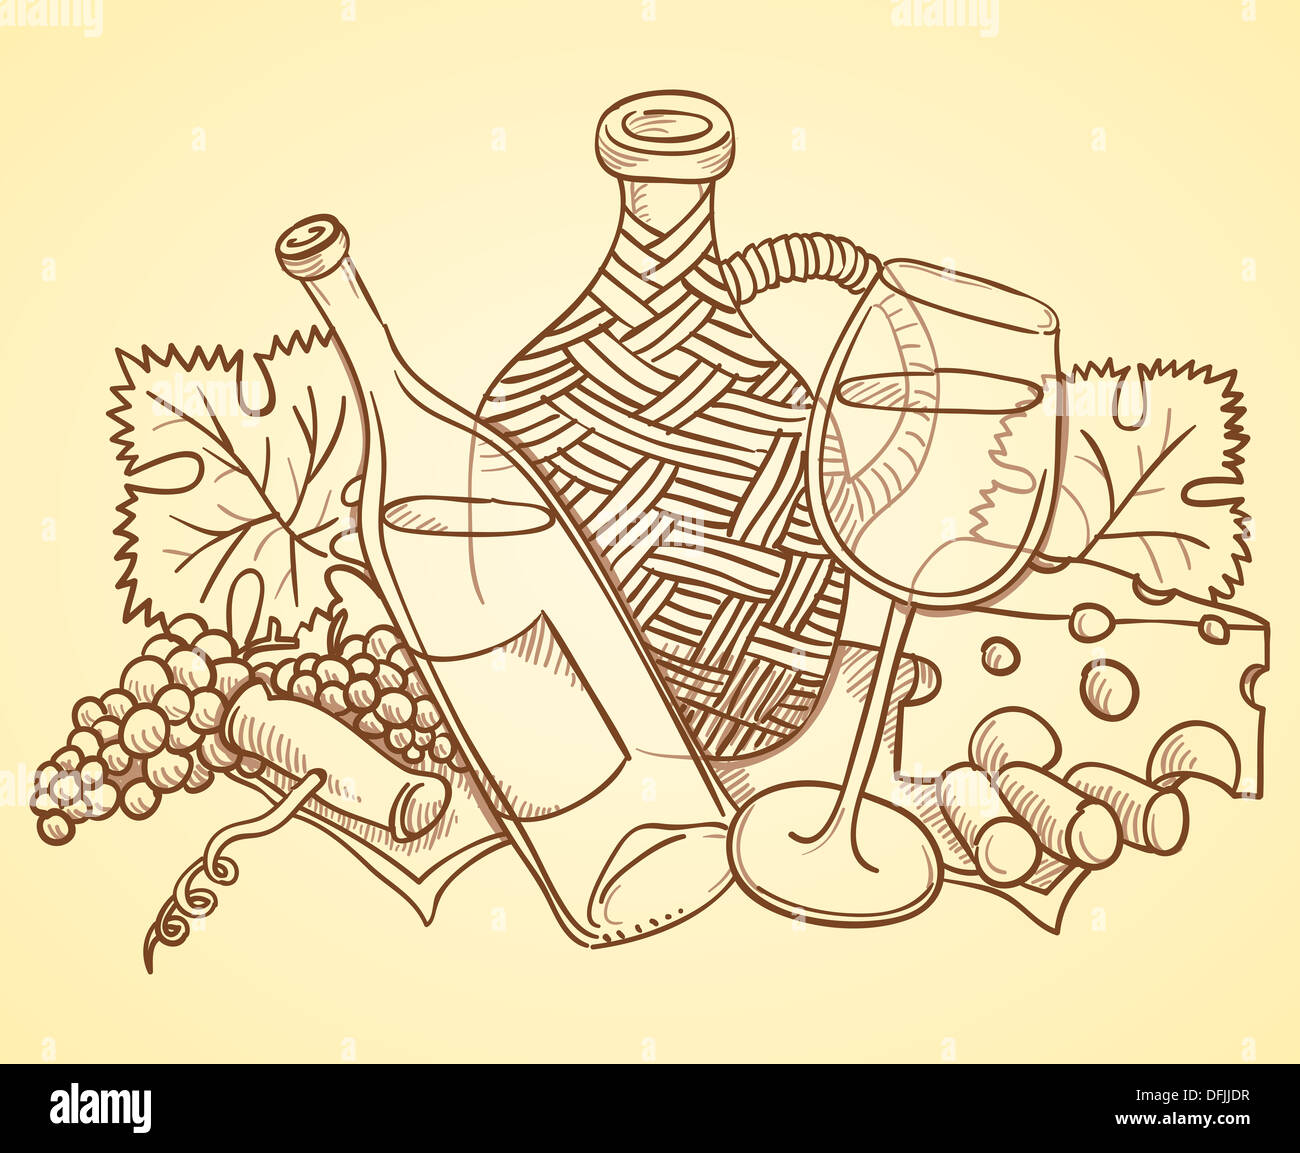 Wine Themed Drawing - Stock Image